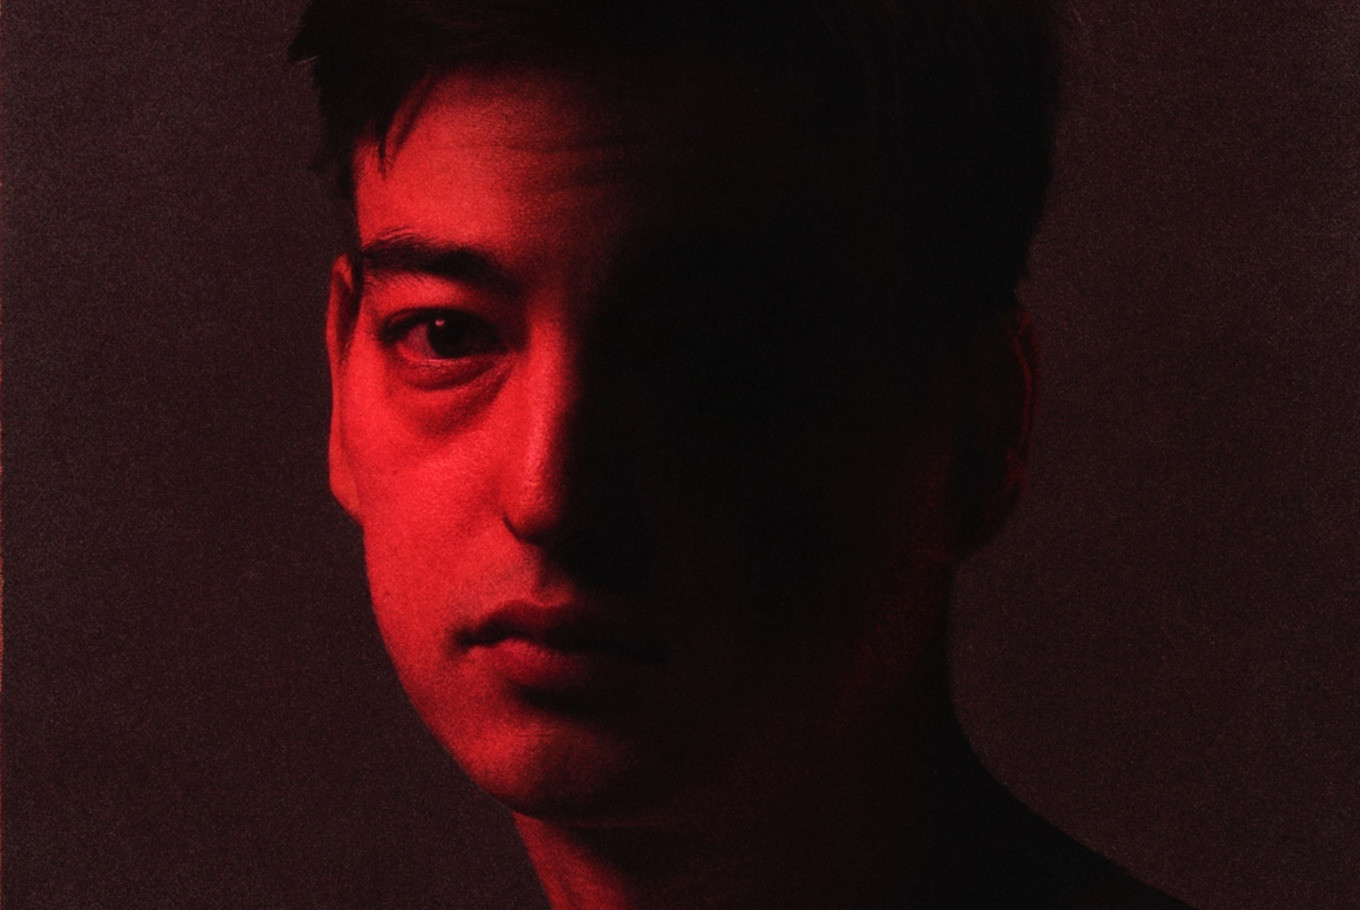 Joji to hold 'The Extravaganza' livestream event on Saturday